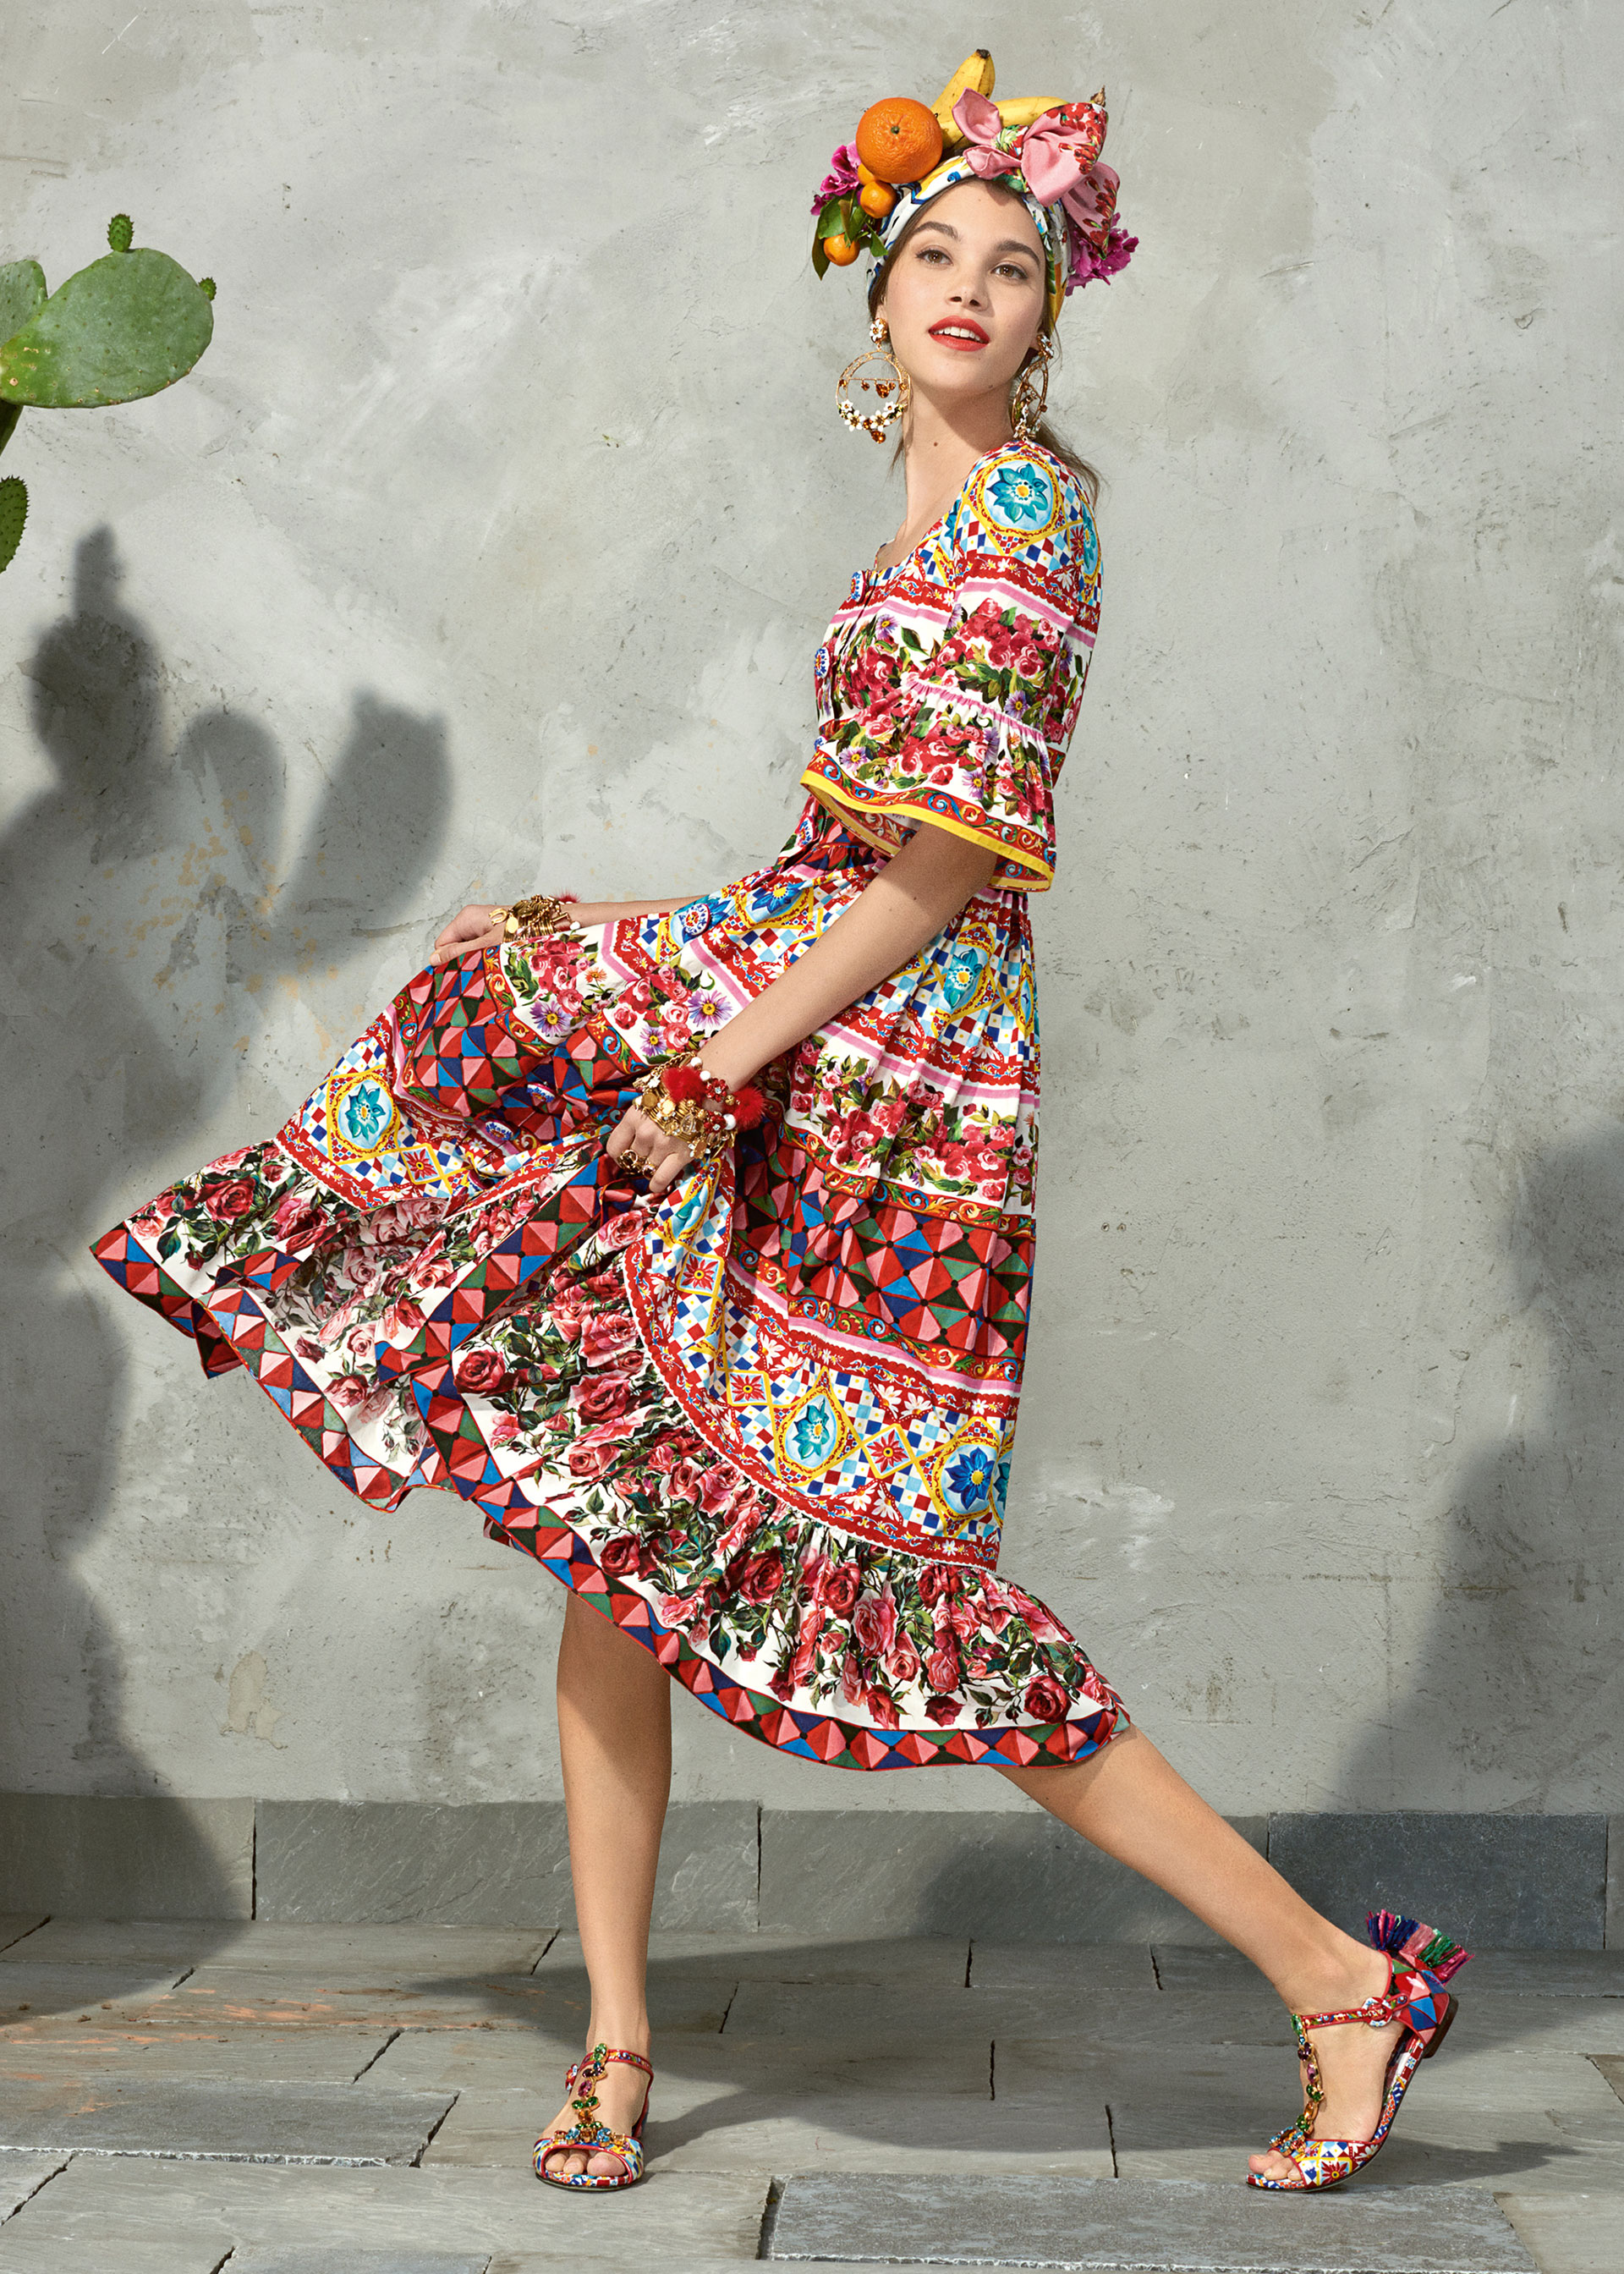 dolce and gabbana summer 2017 woman collection 91 - Dolce & Gabbana/Spring Summer 2017 Collection/ Mambo